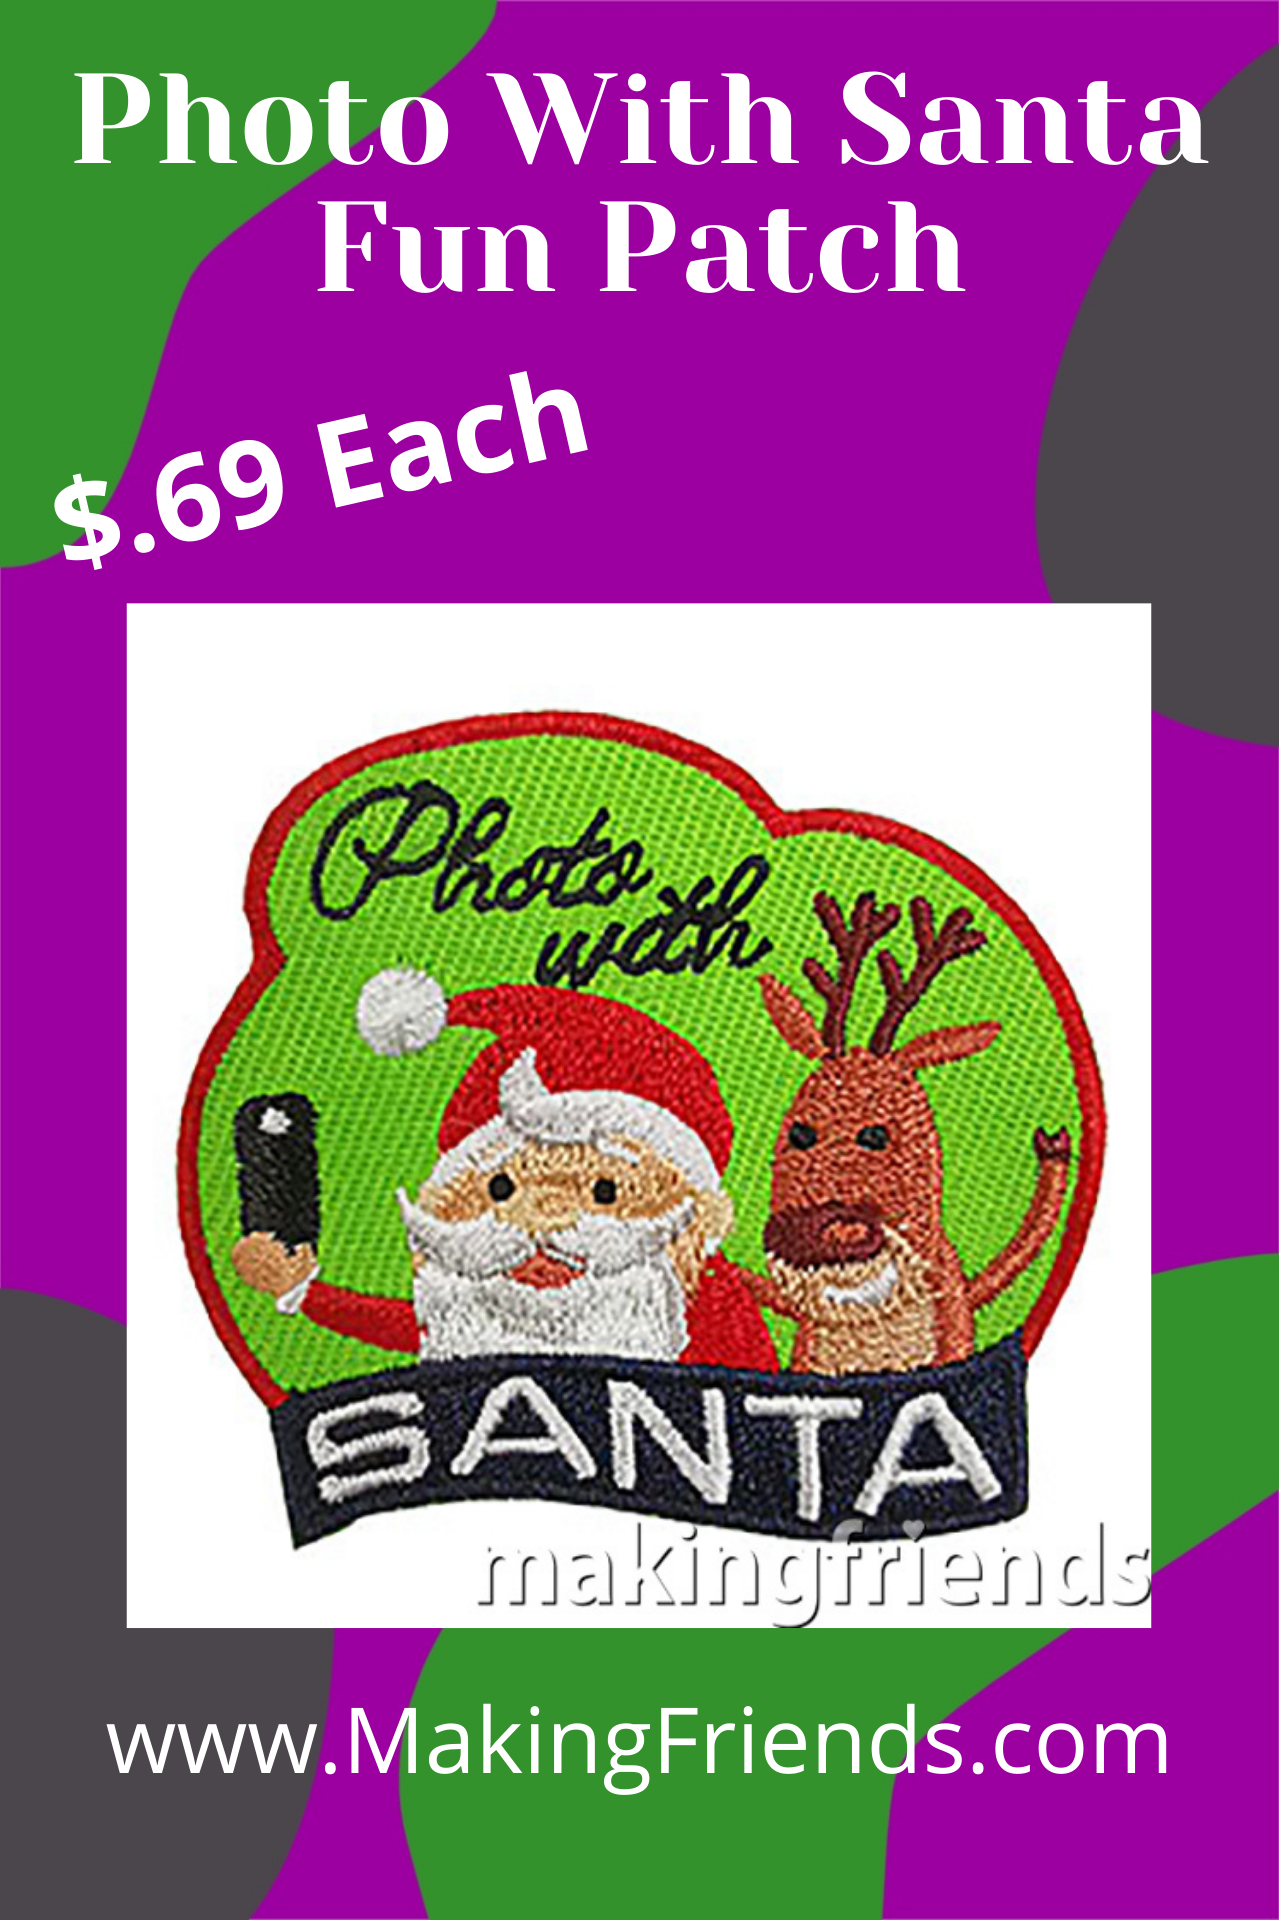 Photo with Santa Patch from MakingFriends®.com. Commemorate a fun scout trip to see Santa with this cute Photo with Santa Patch from MakingFriends®.com. via @gsleader411